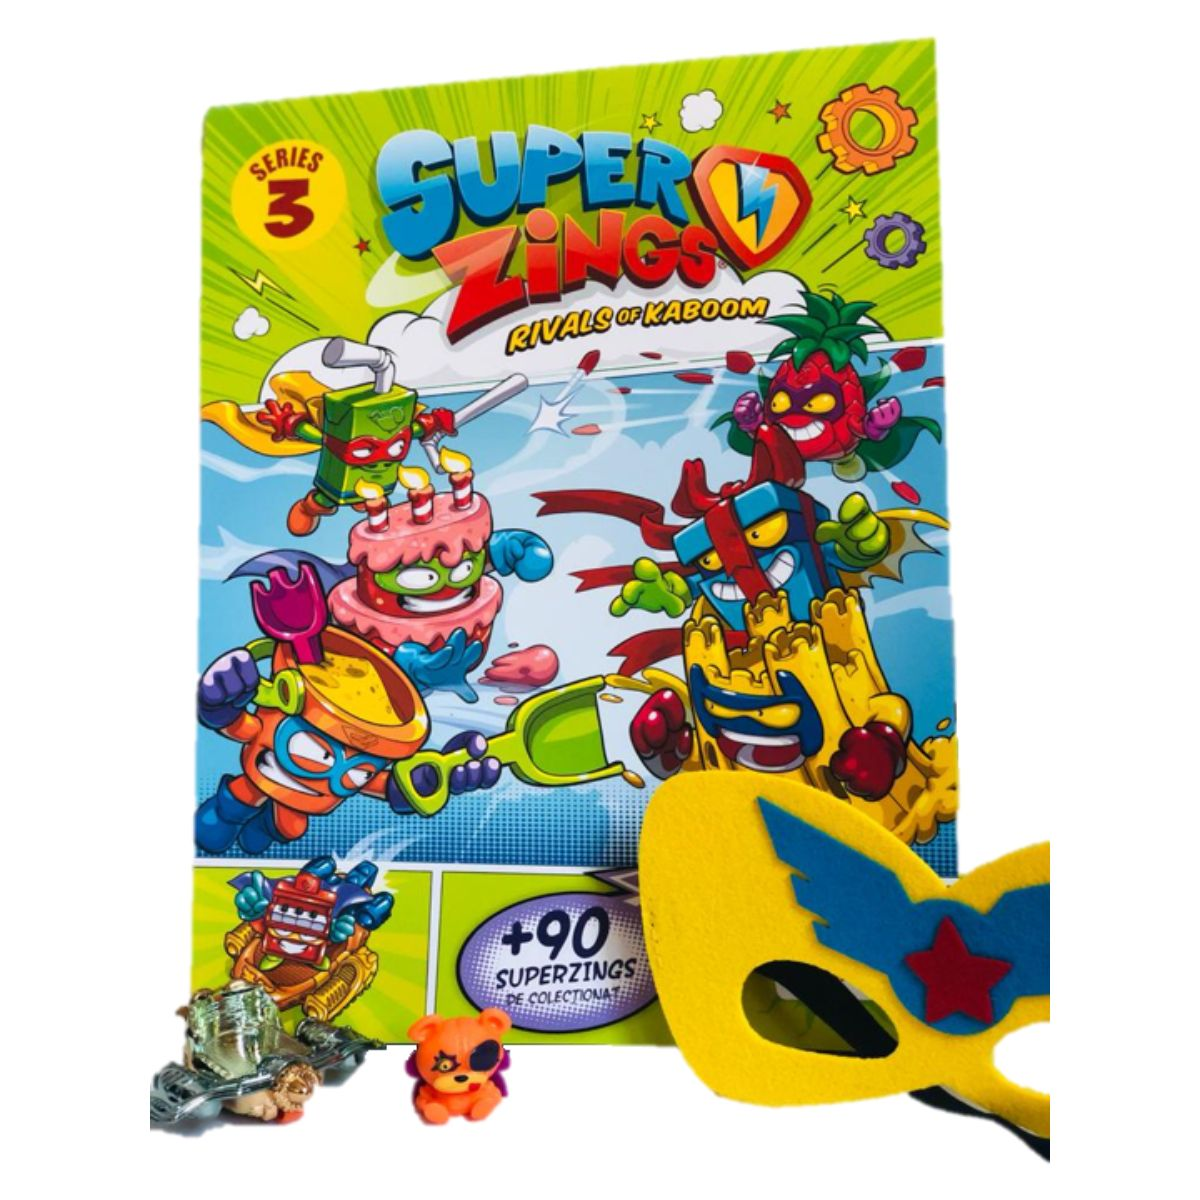 Pachet SuperZings, jucarie si poster, S3